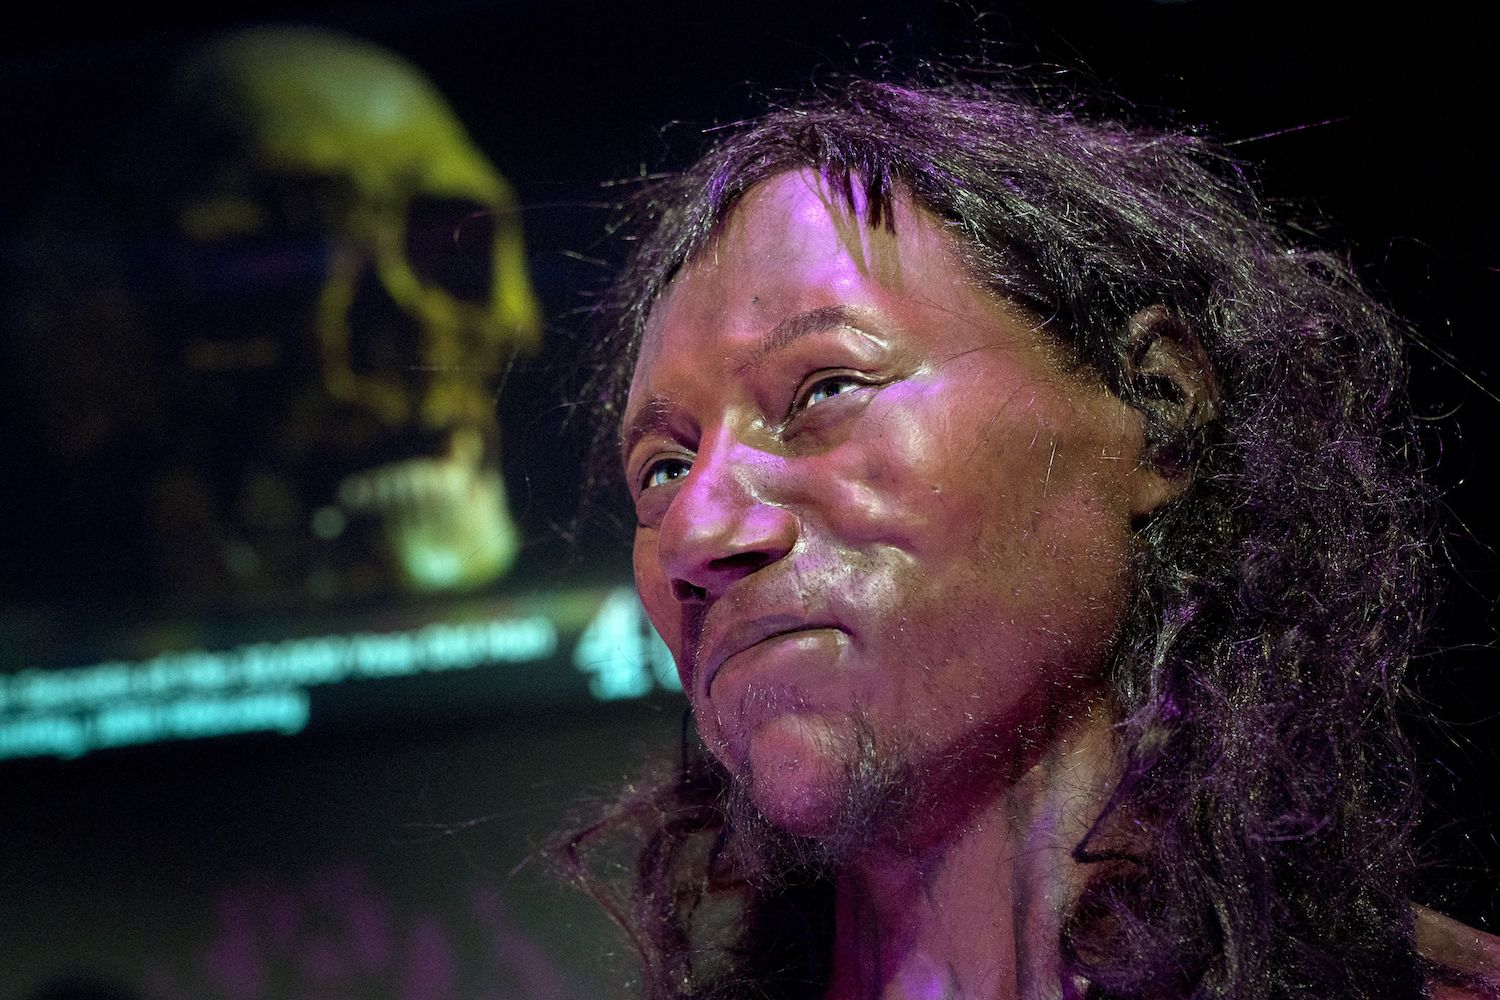 A full face reconstruction model made from the skull of a 10,000 year old man, known as 'Cheddar Man', Britain's oldest complete skeleton is pictured during a press preview at the National History Museum in London on February 6, 2018. **PLEASE NOTE: PHOTOGRAPHS ARE EMBARGOED UNTIL 00.01 GMT February 7, 2018**   / AFP PHOTO / Justin TALLIS        (Photo credit should read JUSTIN TALLIS/AFP/Getty Images)